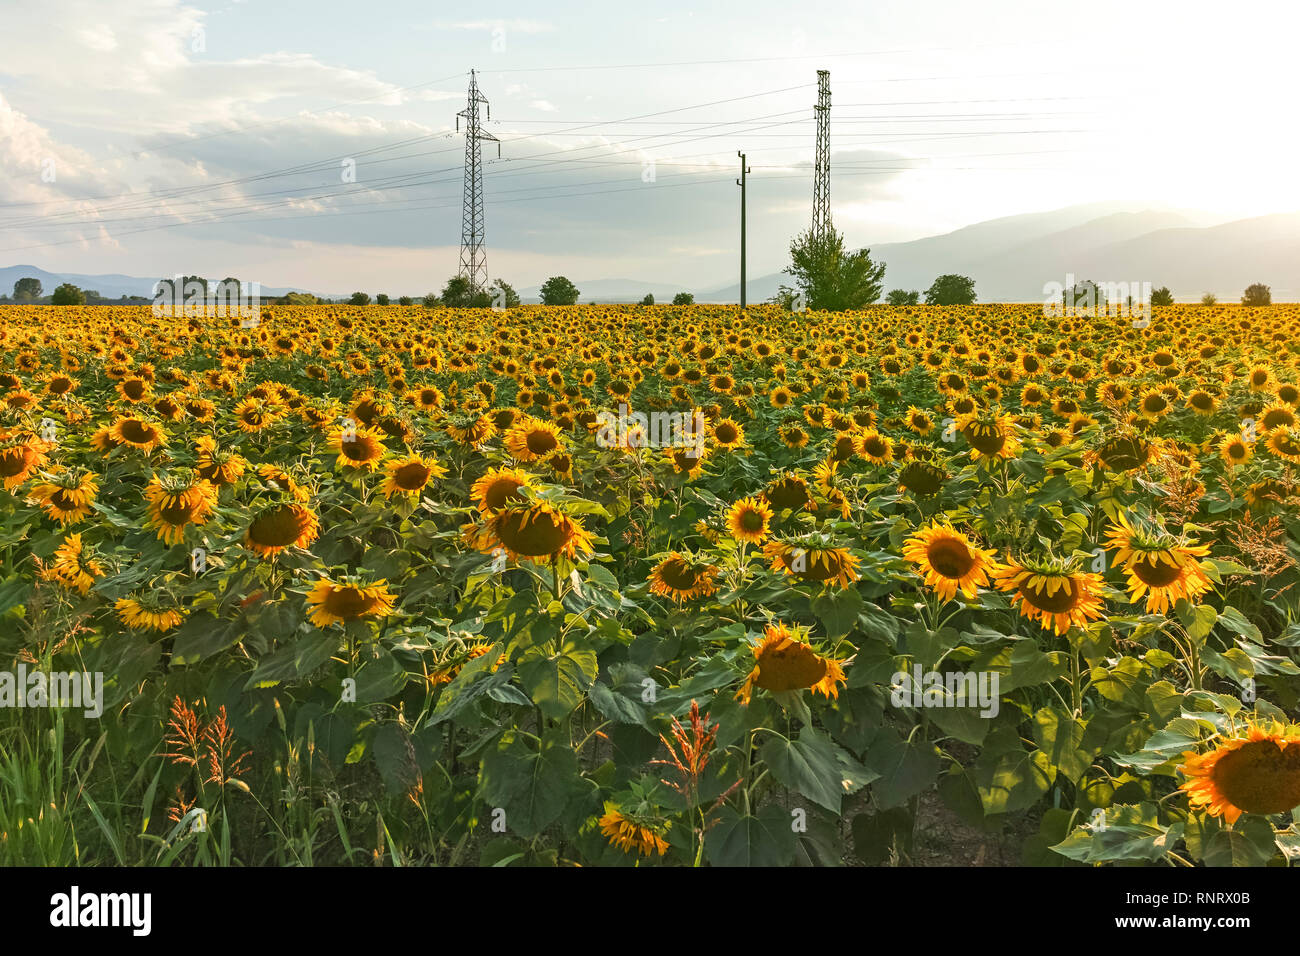 Sunset landscape of sunflower field at Kazanlak Valley, Stara Zagora Region, Bulgaria - Stock Image